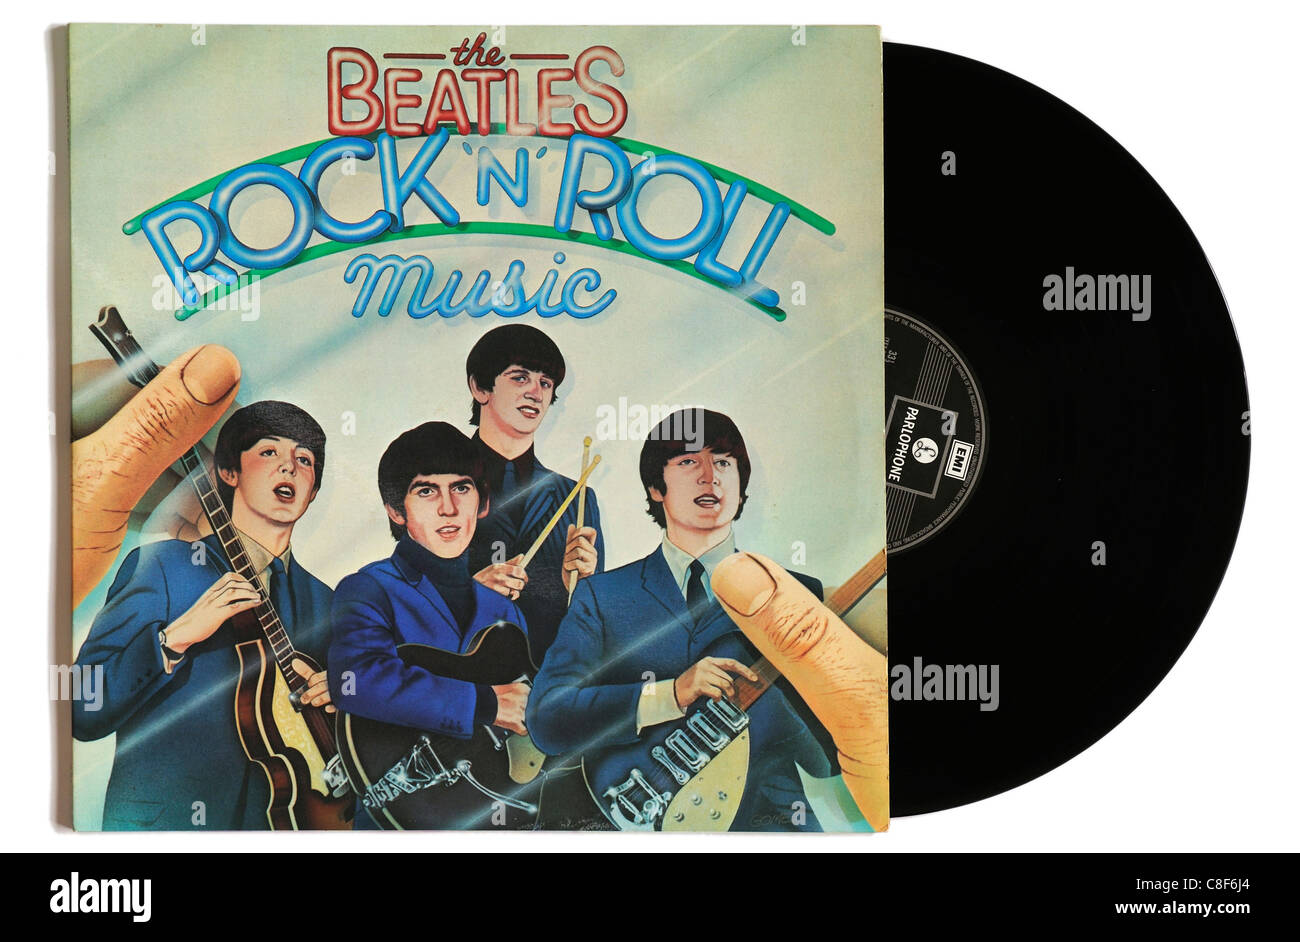 a history of the beatles in modern rock and roll music Rock and roll music, beatles songs, beatles history, recording history, songwriting history, song structure and style, american releases, live performances.